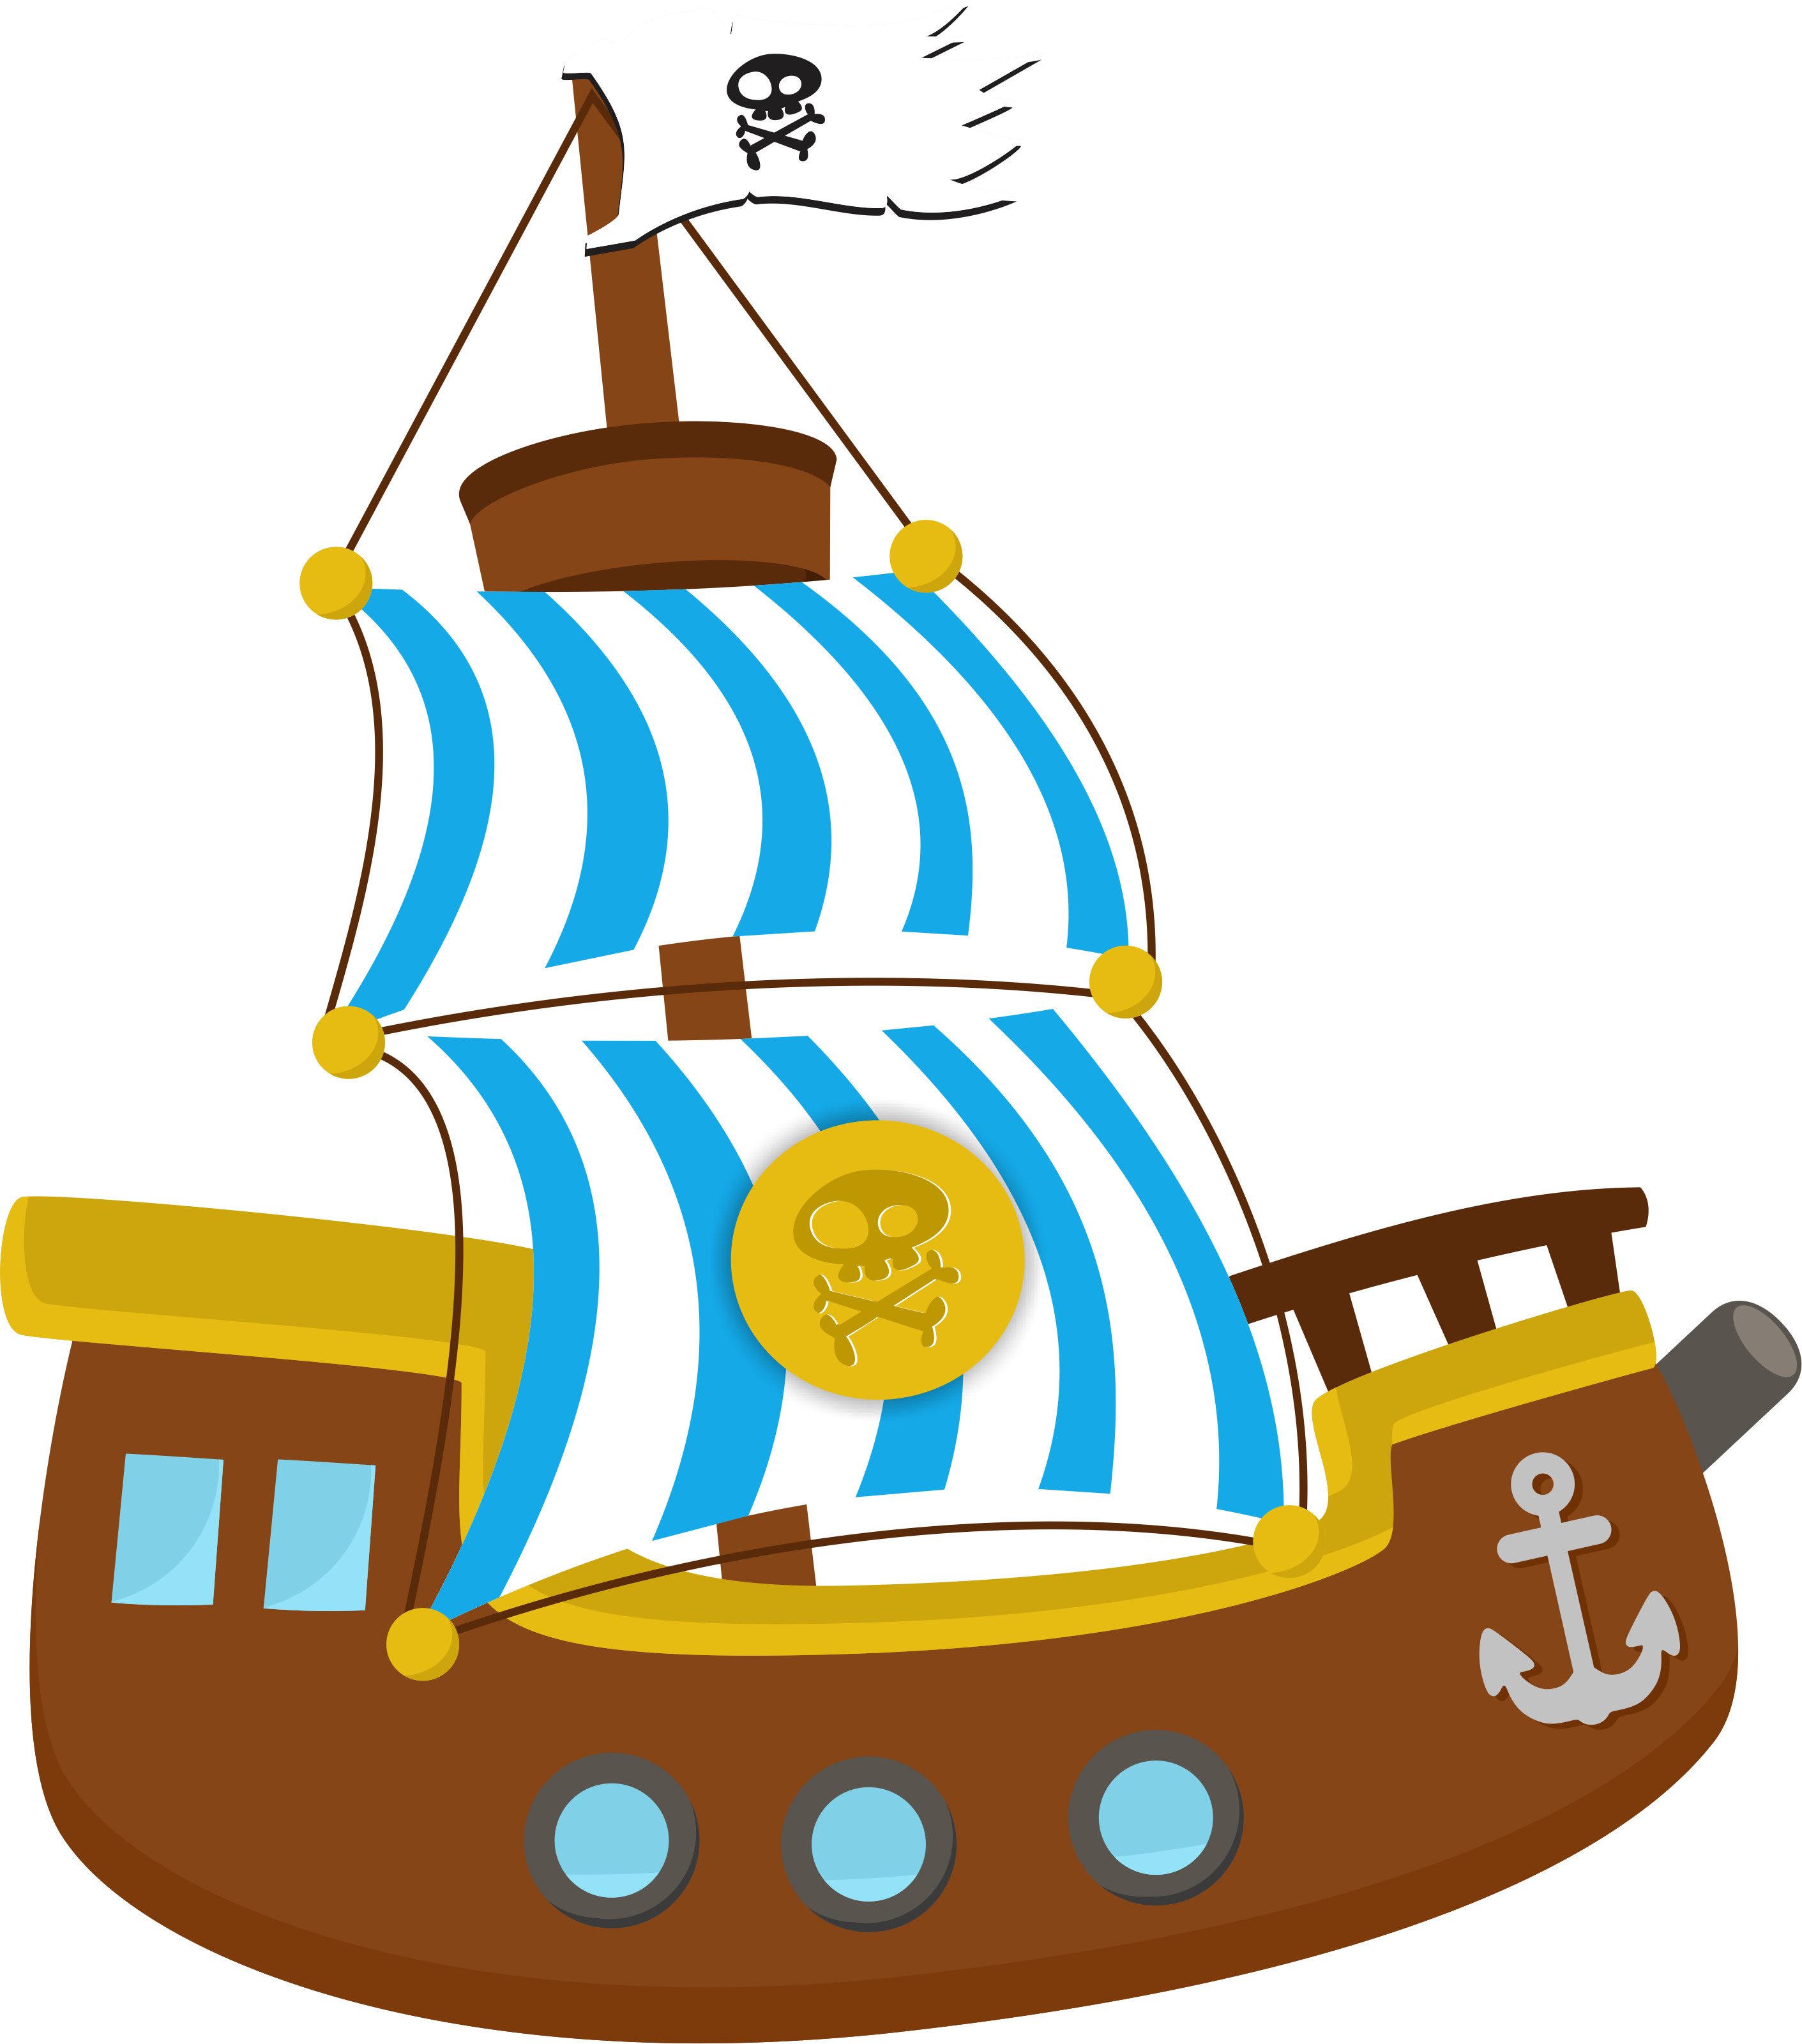 2822x3201 Jake And The Neverland Pirates Ship Clipart